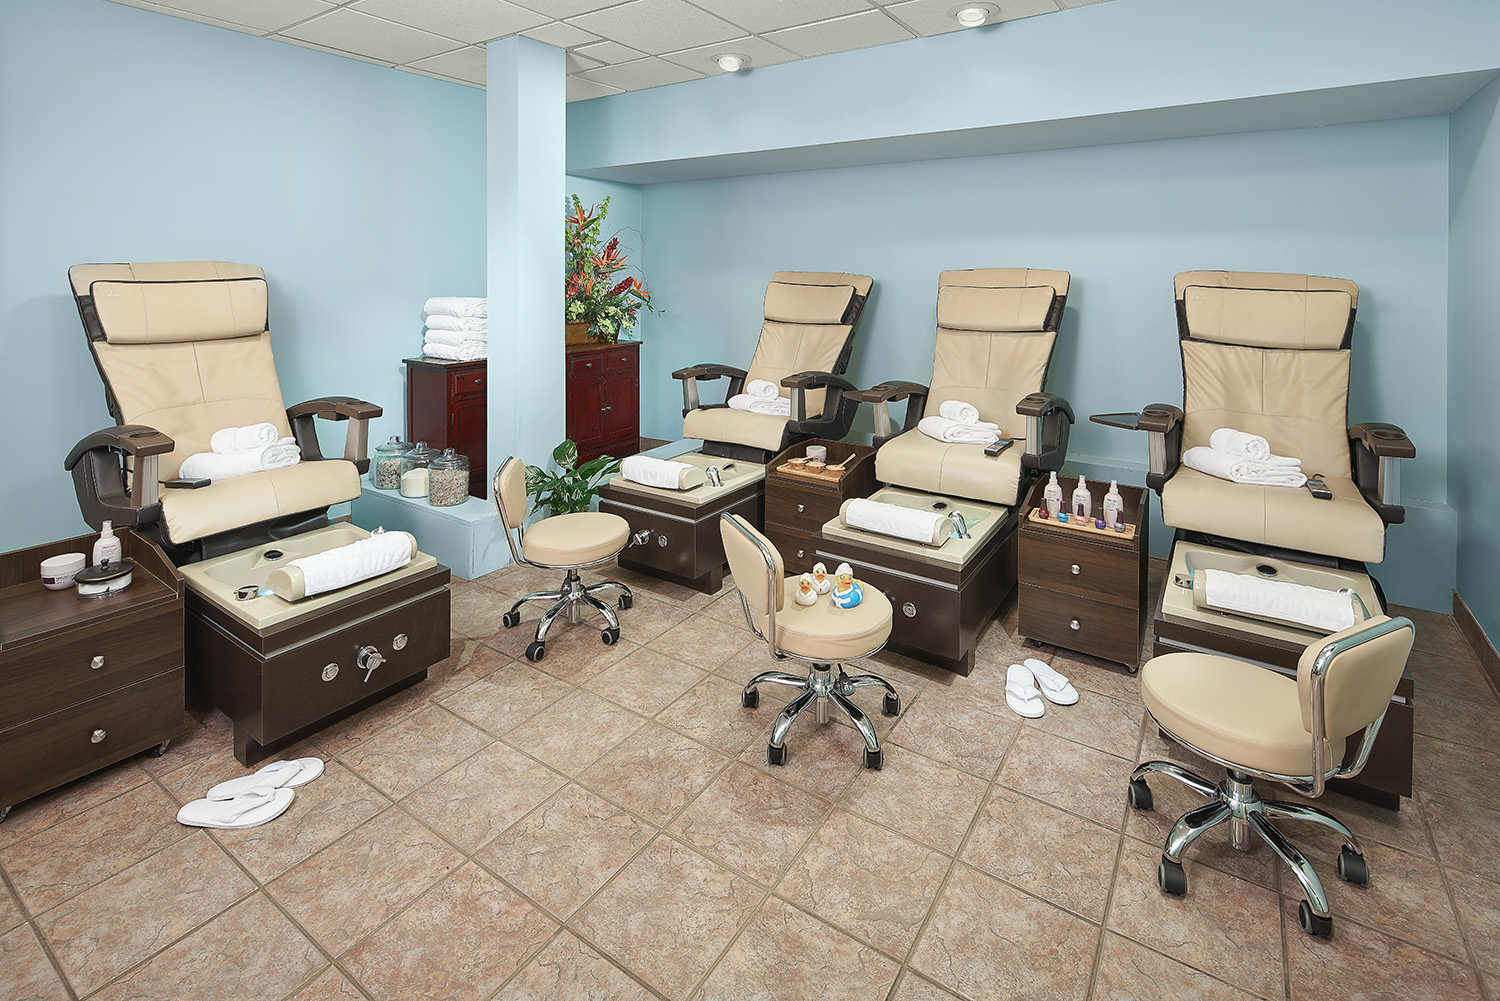 Guests can also enjoy manicures and pedicures in the hotel's beauty salon.